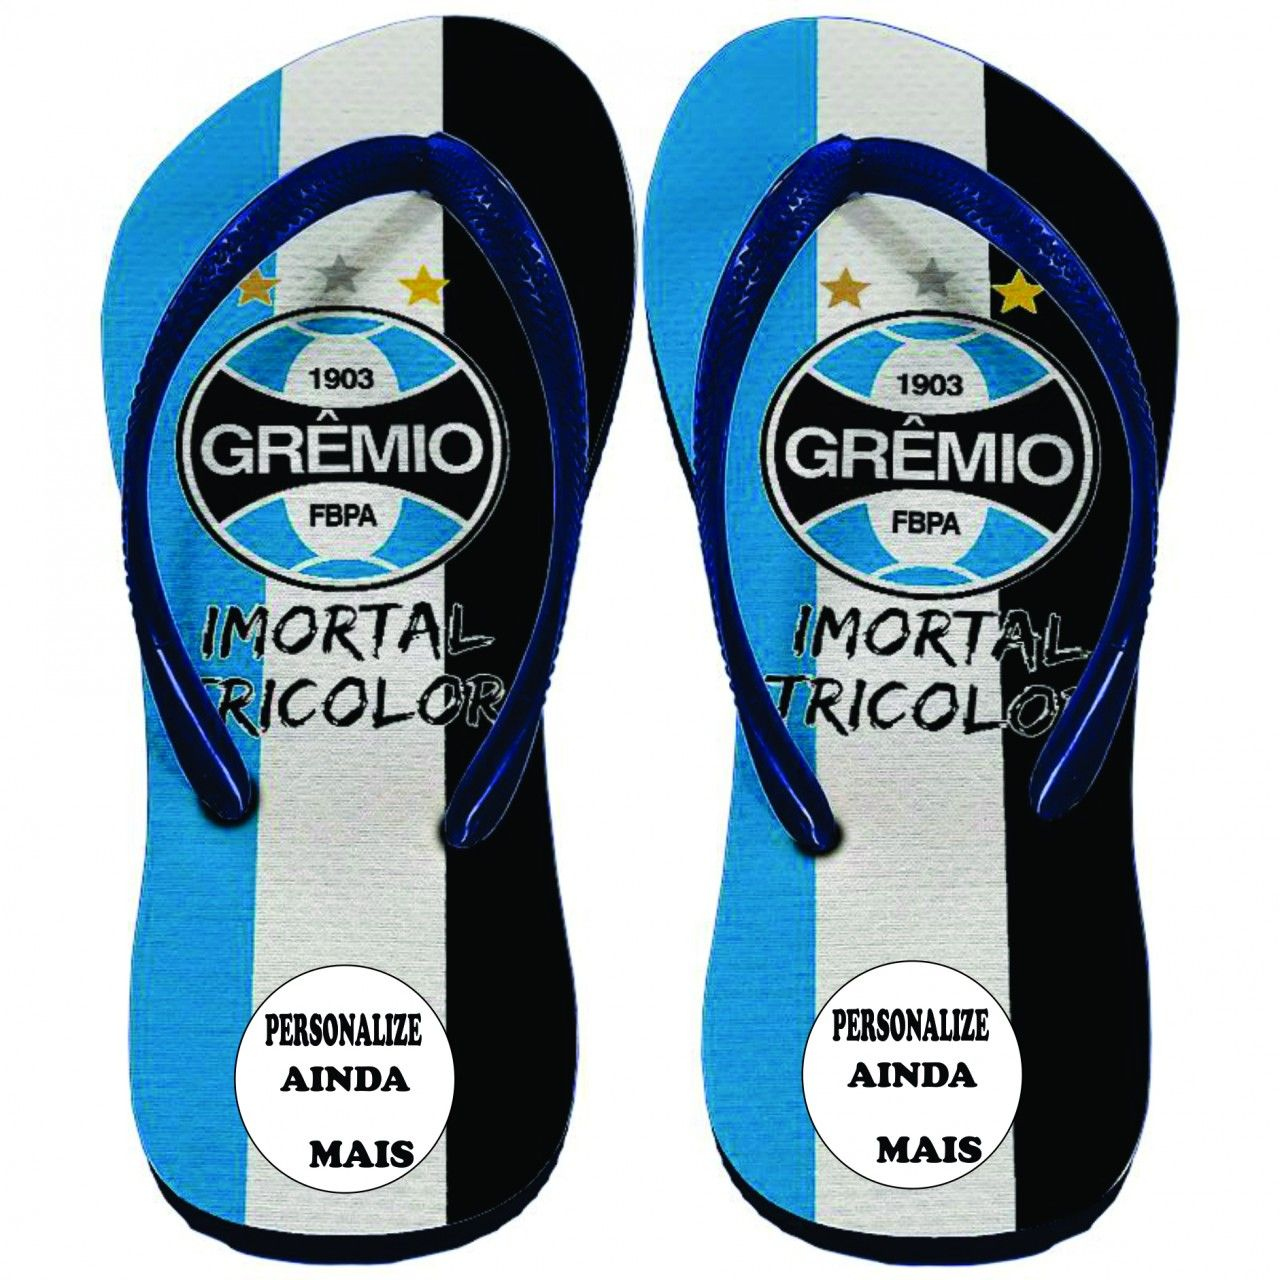 Chinelo Grêmio Foot-Ball Porto Alegrense - Exclusiva  69d731fde0295